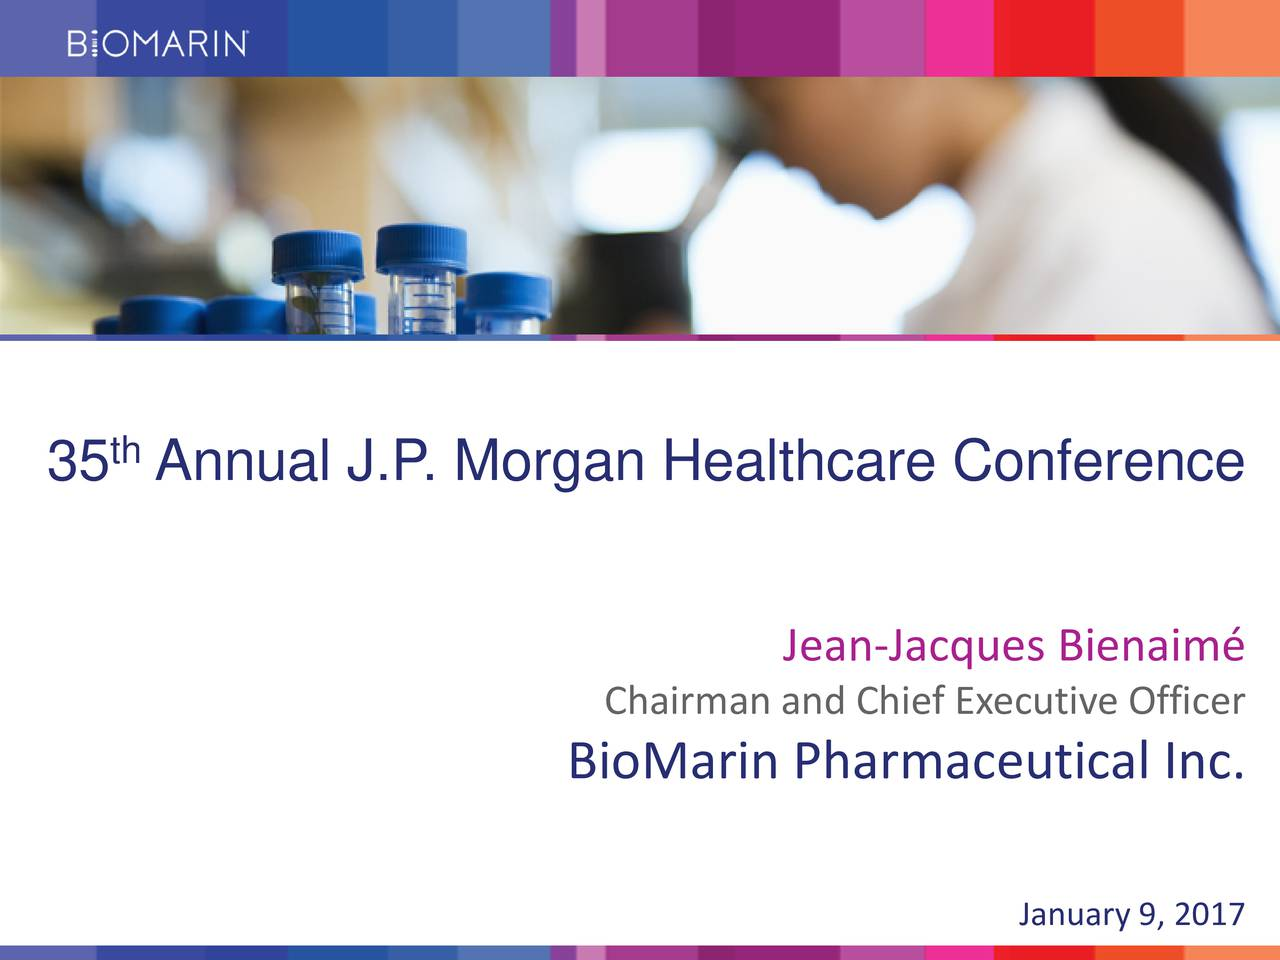 Jean-Jacques Bienaim Chairman and Chief Executive Officer BioMarin Pharmaceutical Inc. January 9, 2017